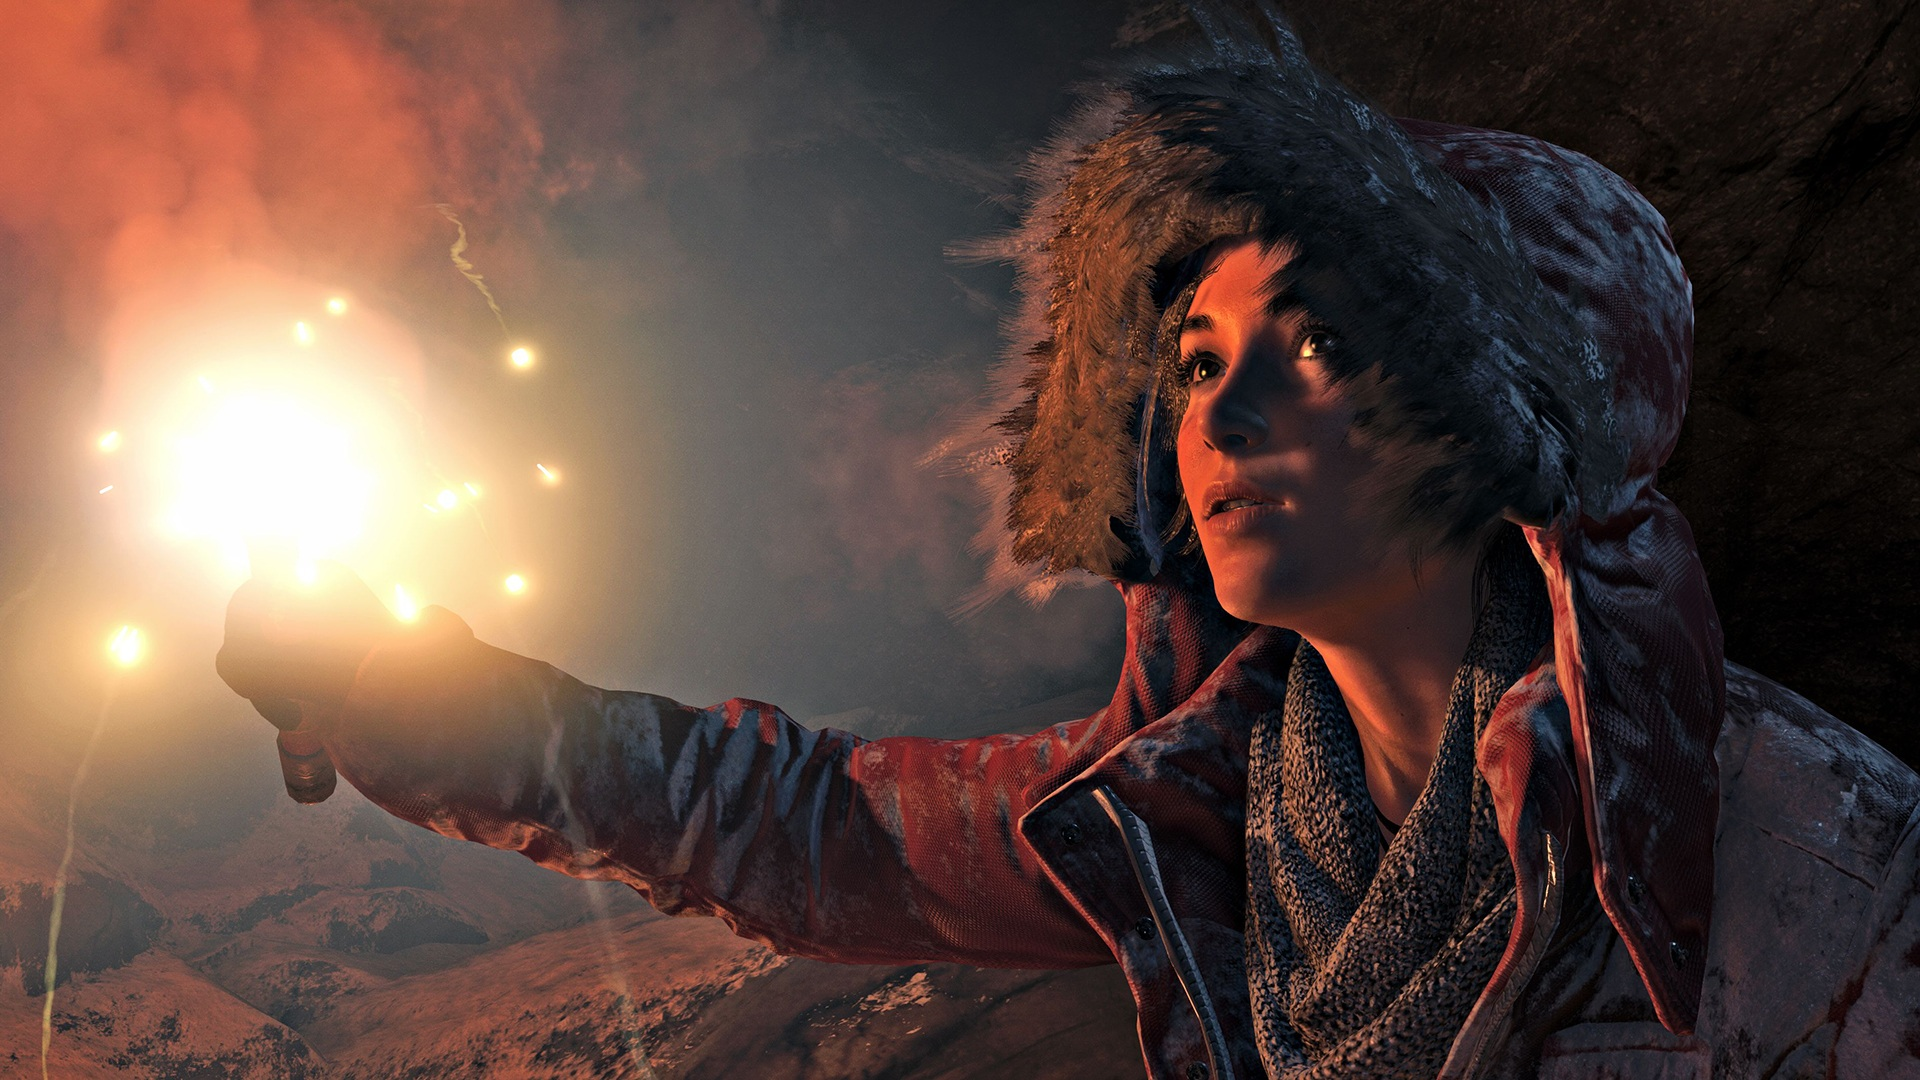 Rise of the Tomb Raider image #3